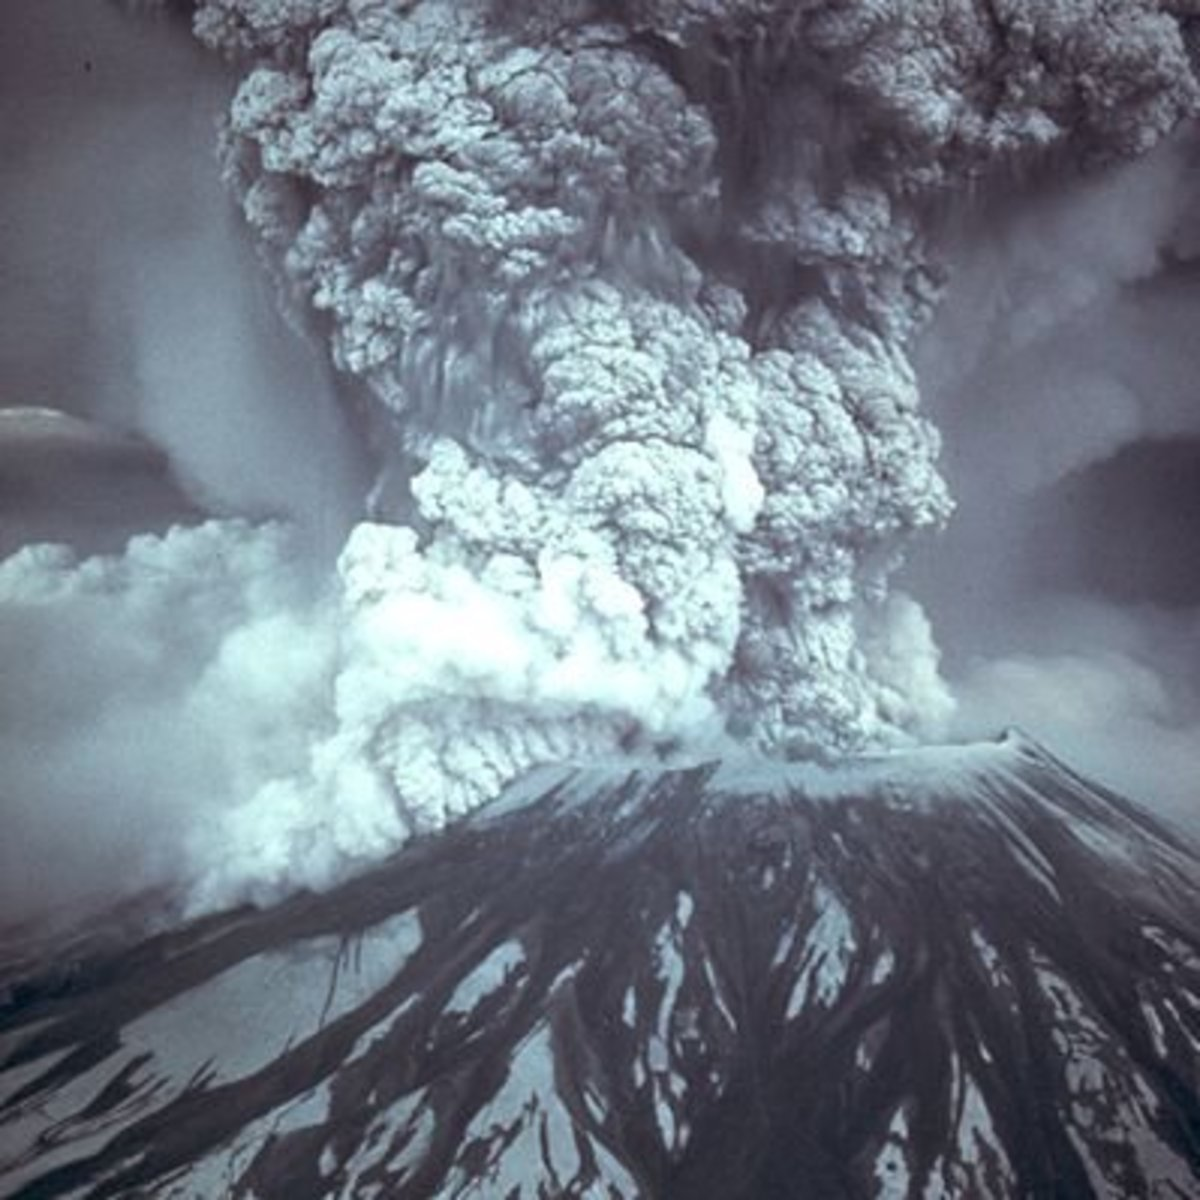 Volcanic eruption. This one is of Mount St. Helens, Oregon, 1980.